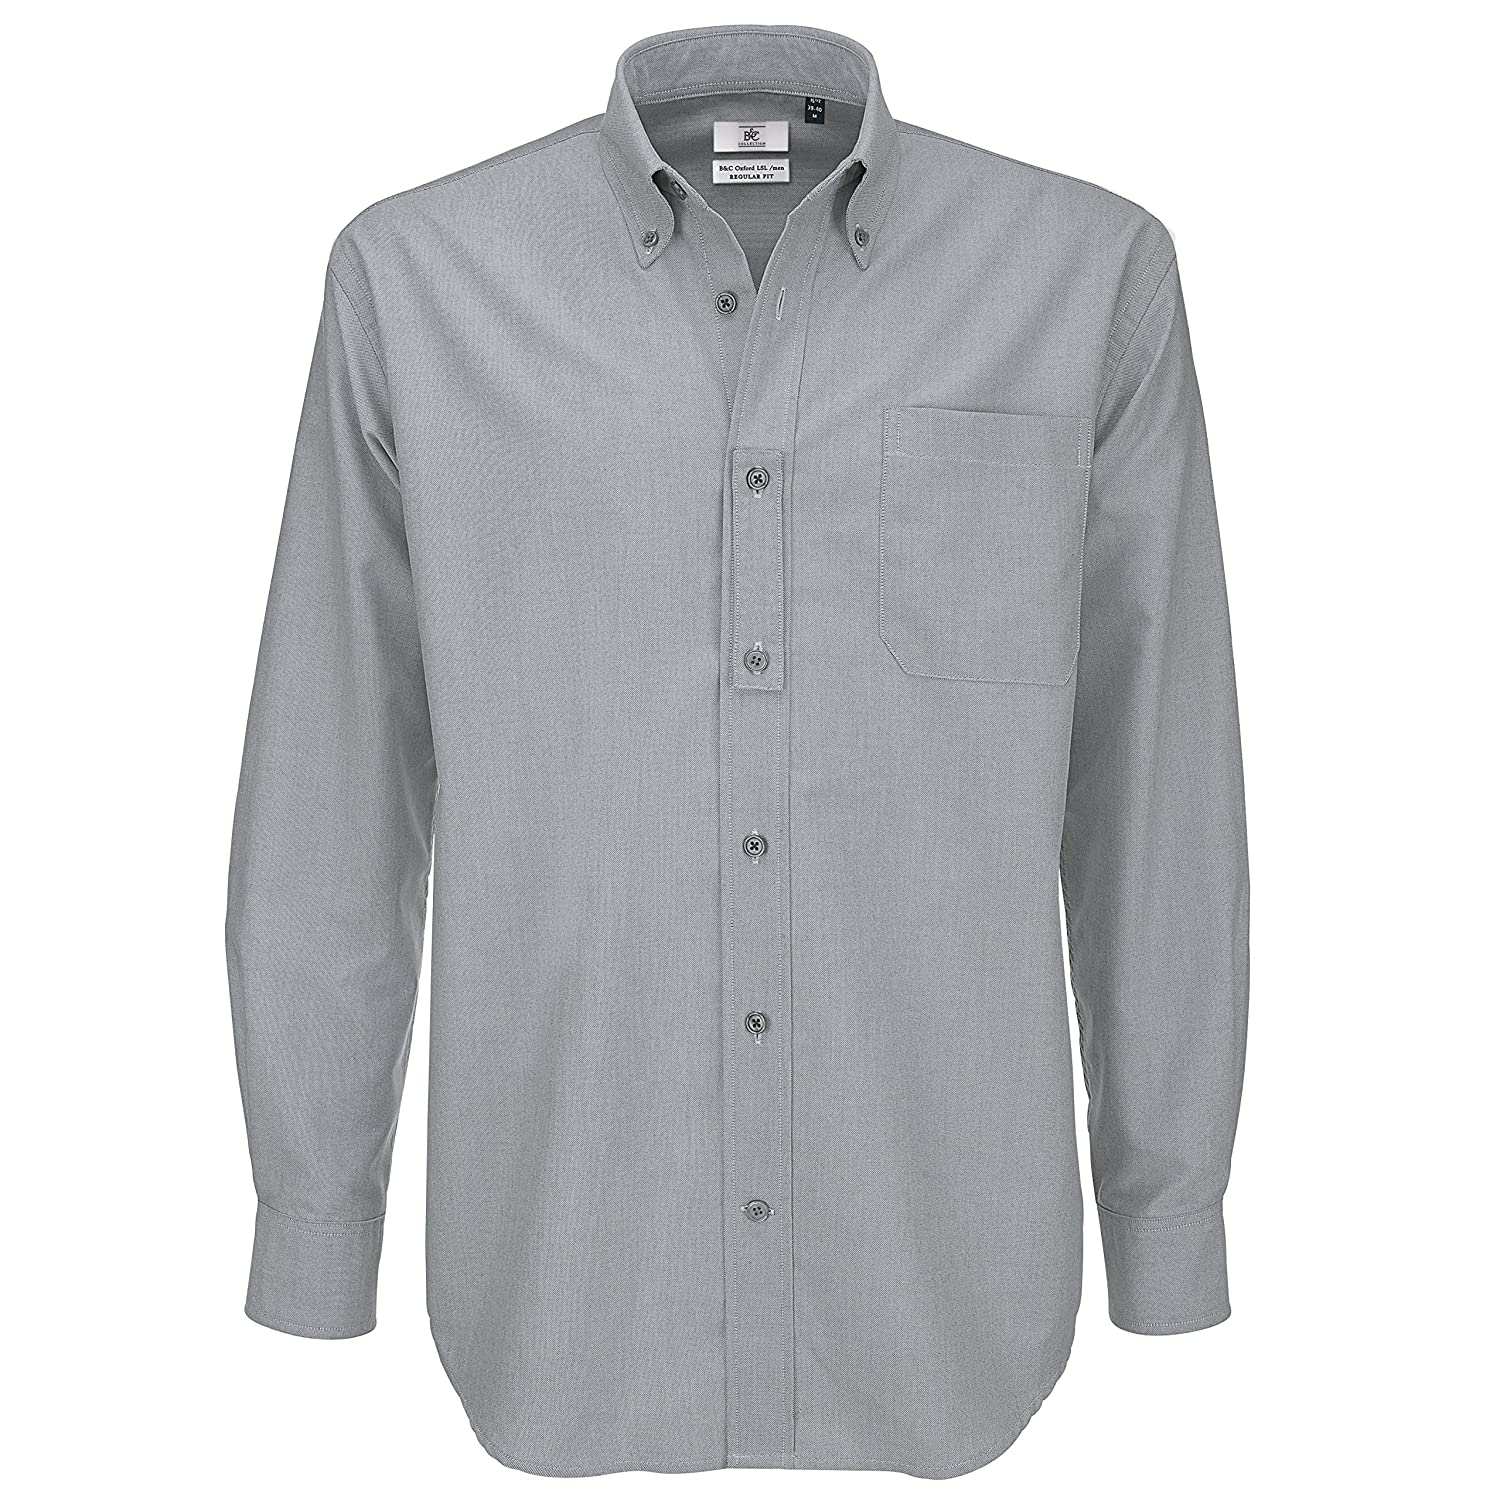 B&C Oxford Long Sleeve Mens Shirt Sizes Up To 21